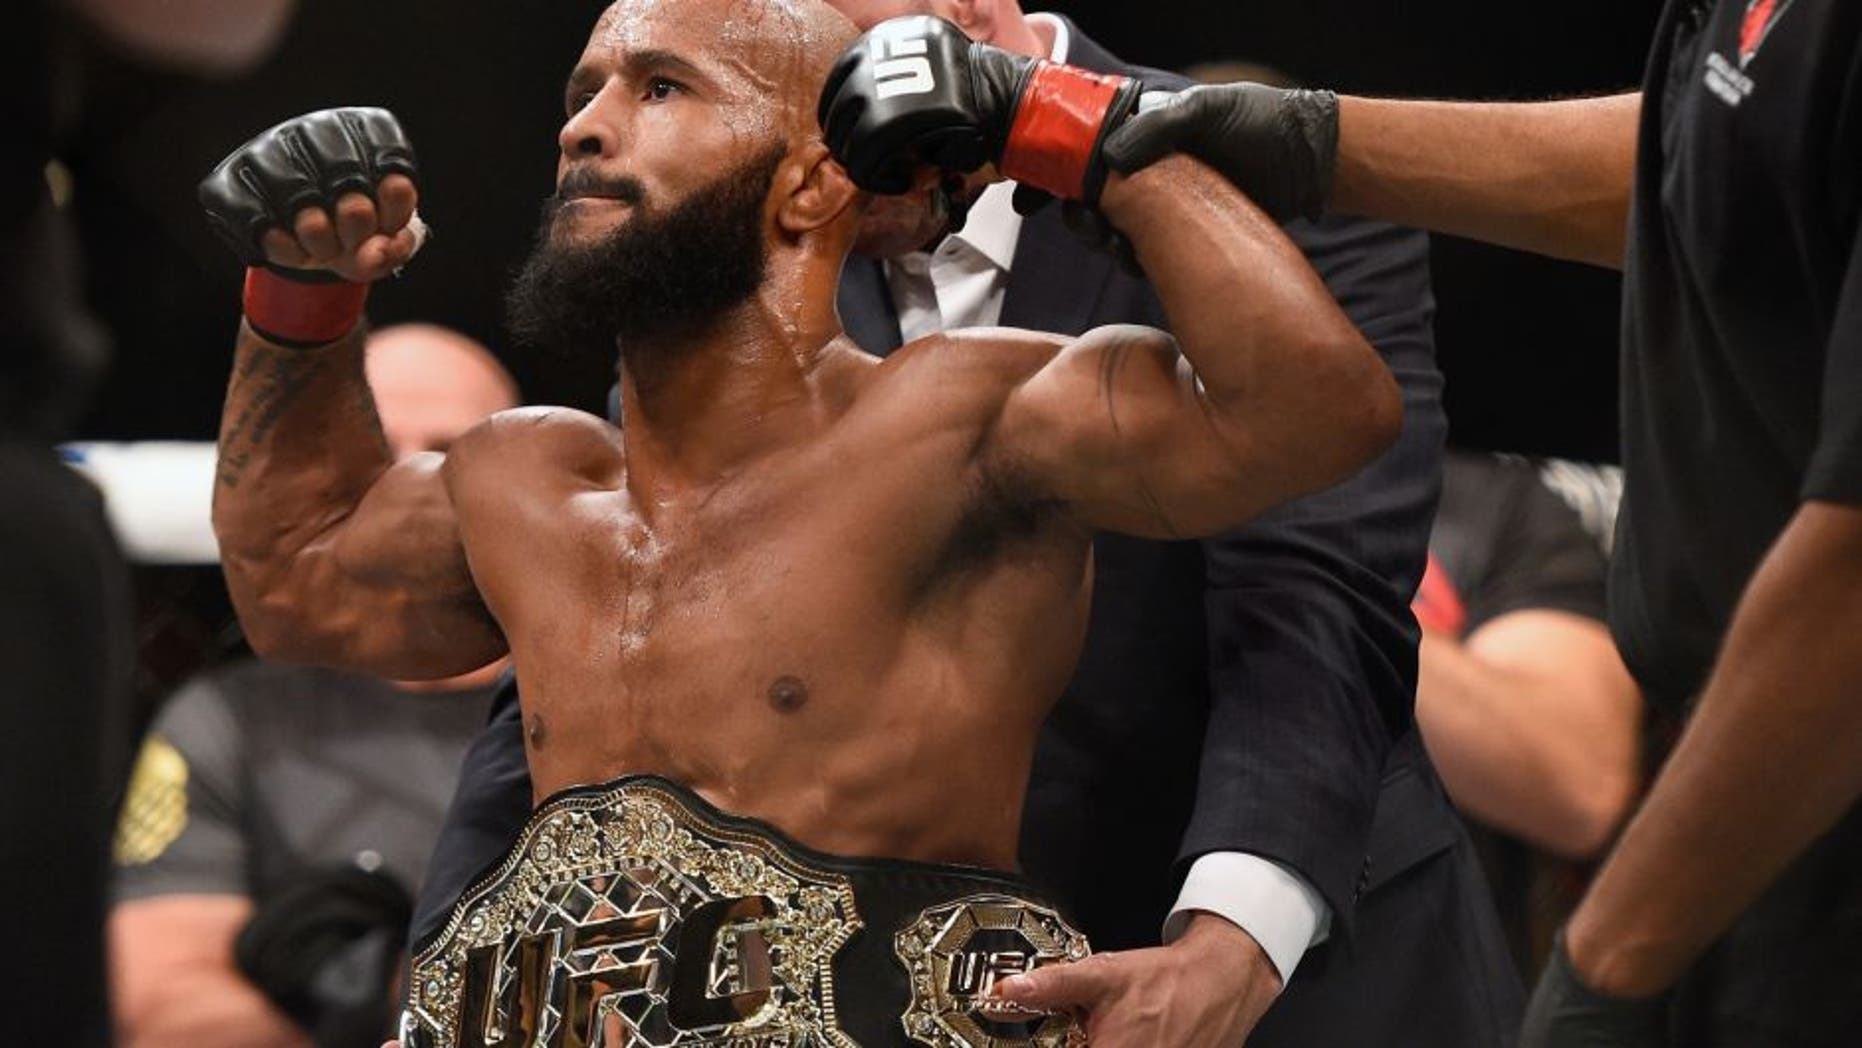 LAS VEGAS, NV - SEPTEMBER 05: Demetrious Johnson reacts after his victory over John Dodson in their flyweight championship bout during the UFC 191 event inside MGM Grand Garden Arena on September 5, 2015 in Las Vegas, Nevada. (Photo by Jeff Bottari/Zuffa LLC/Zuffa LLC via Getty Images)